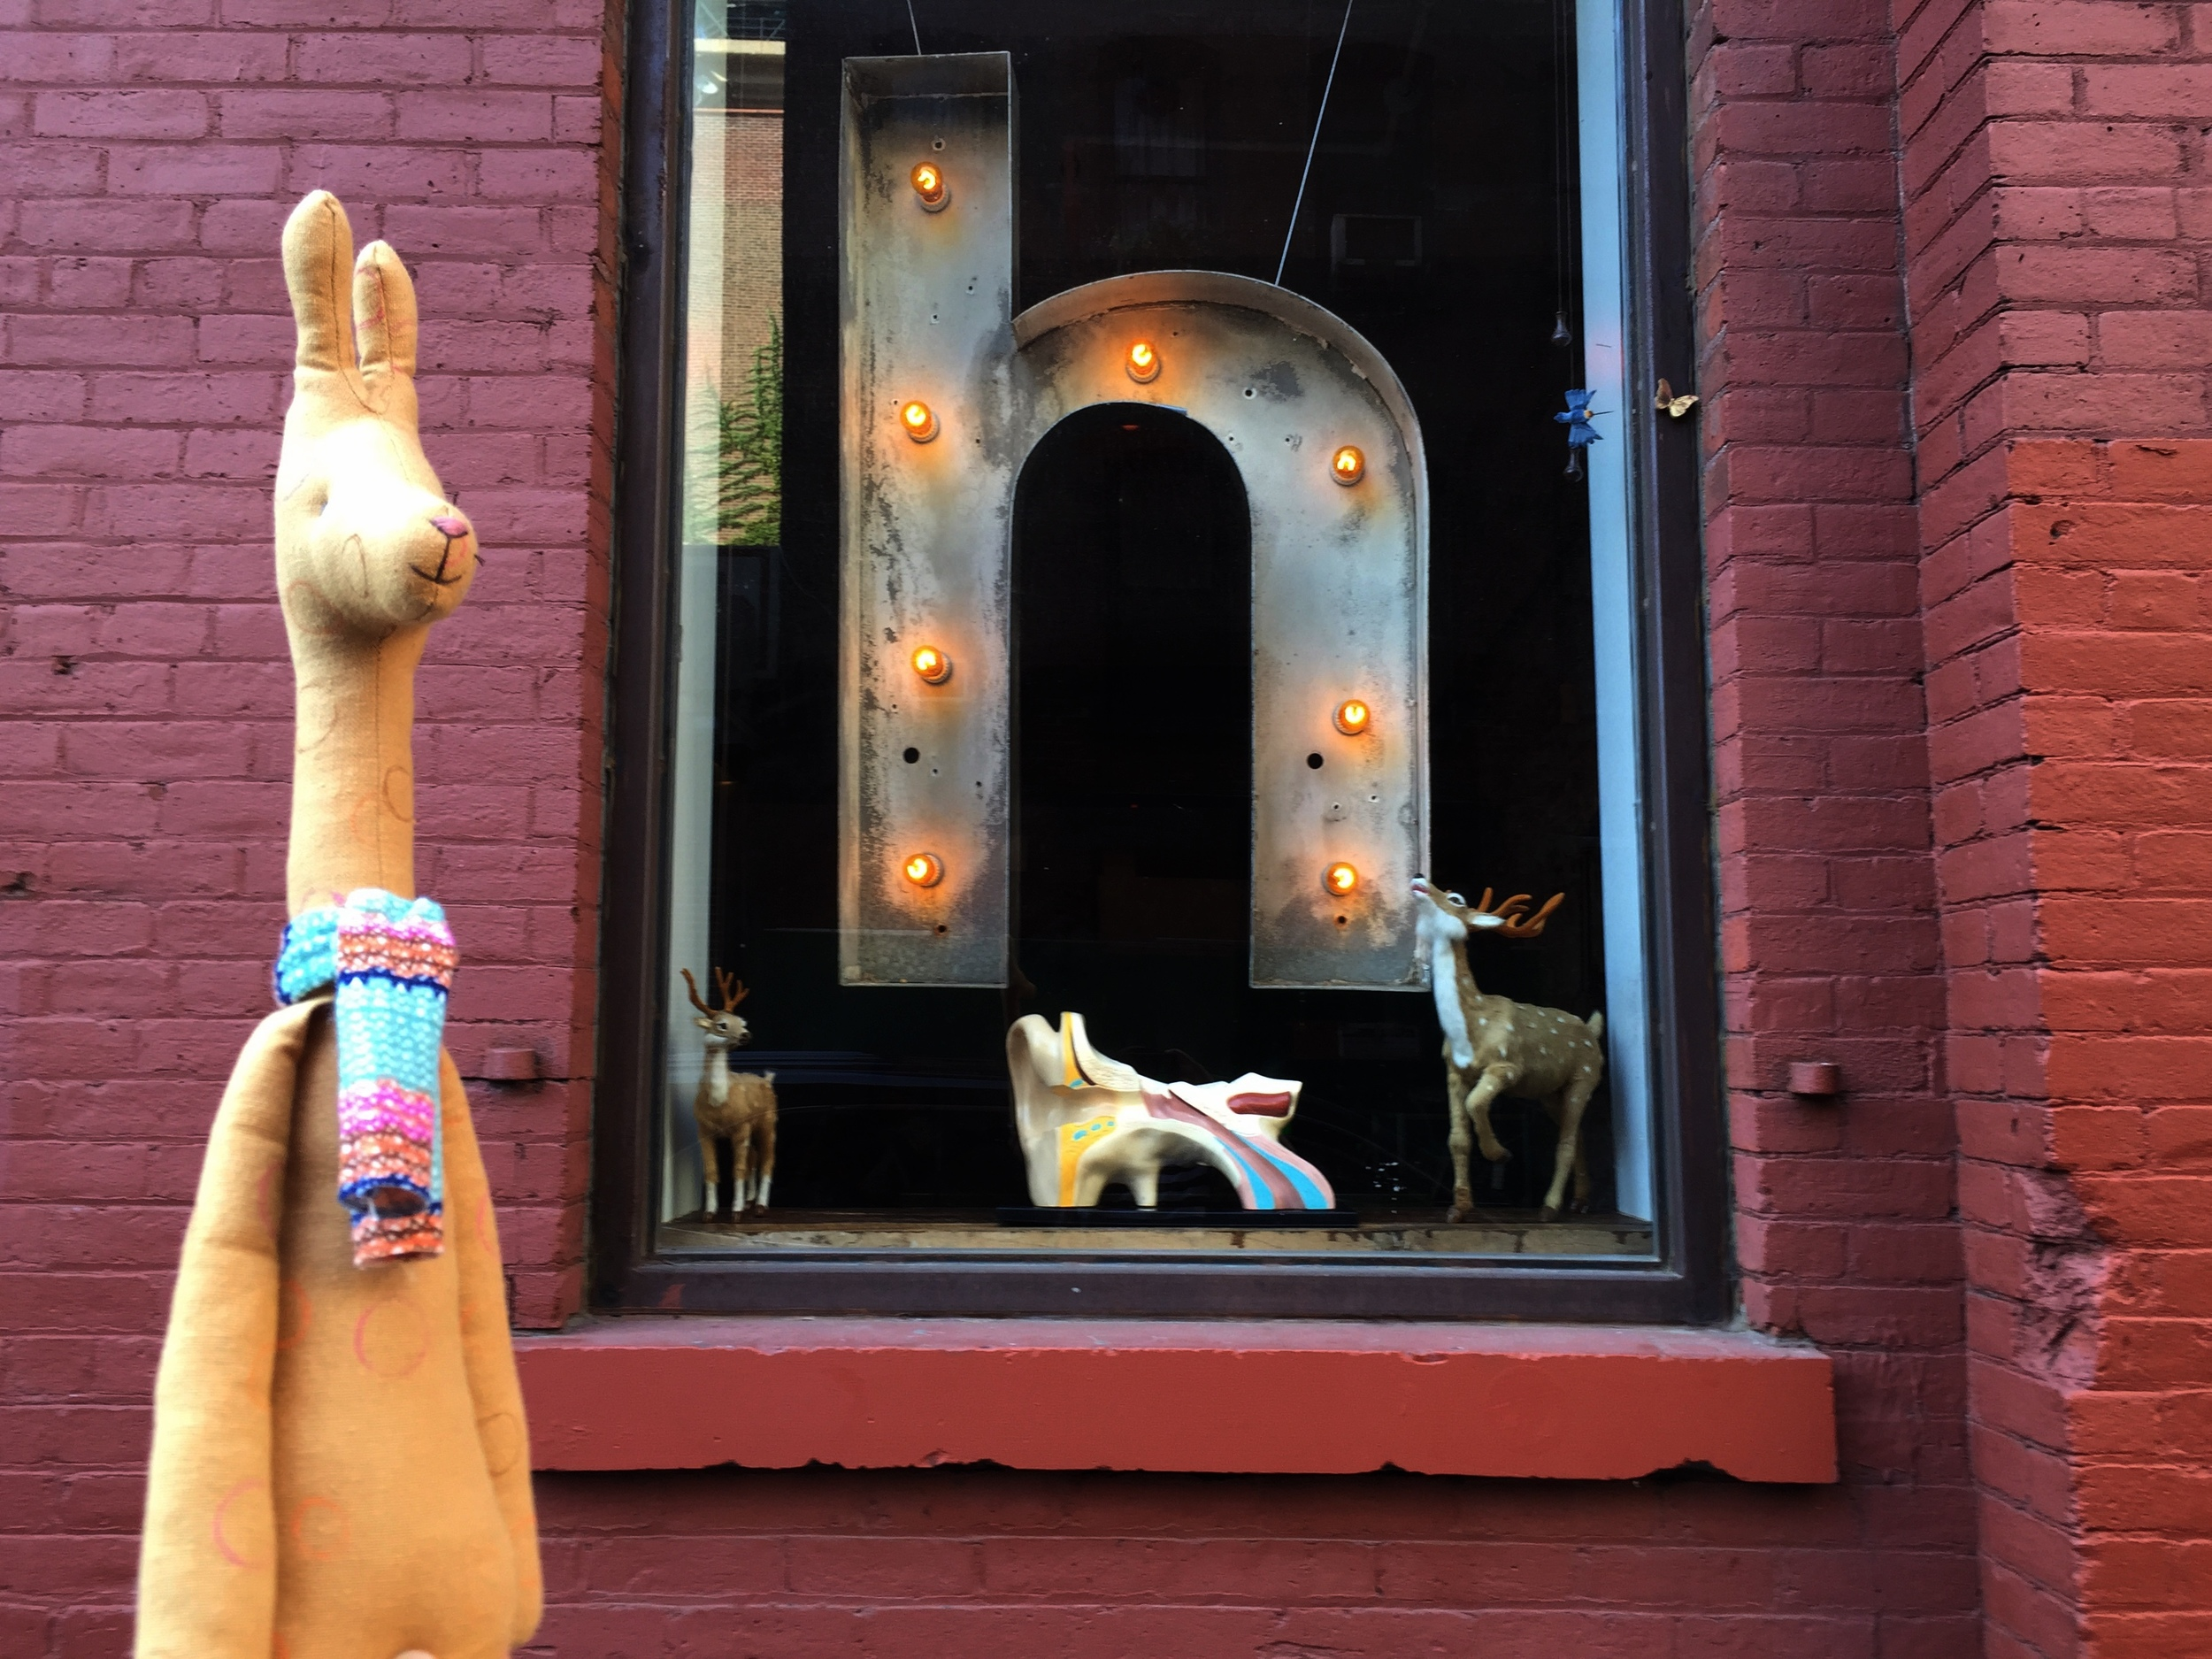 Taken giraffe for walk in DUMBO, Brooklyn. I think he will fit perfectly well with this window display.